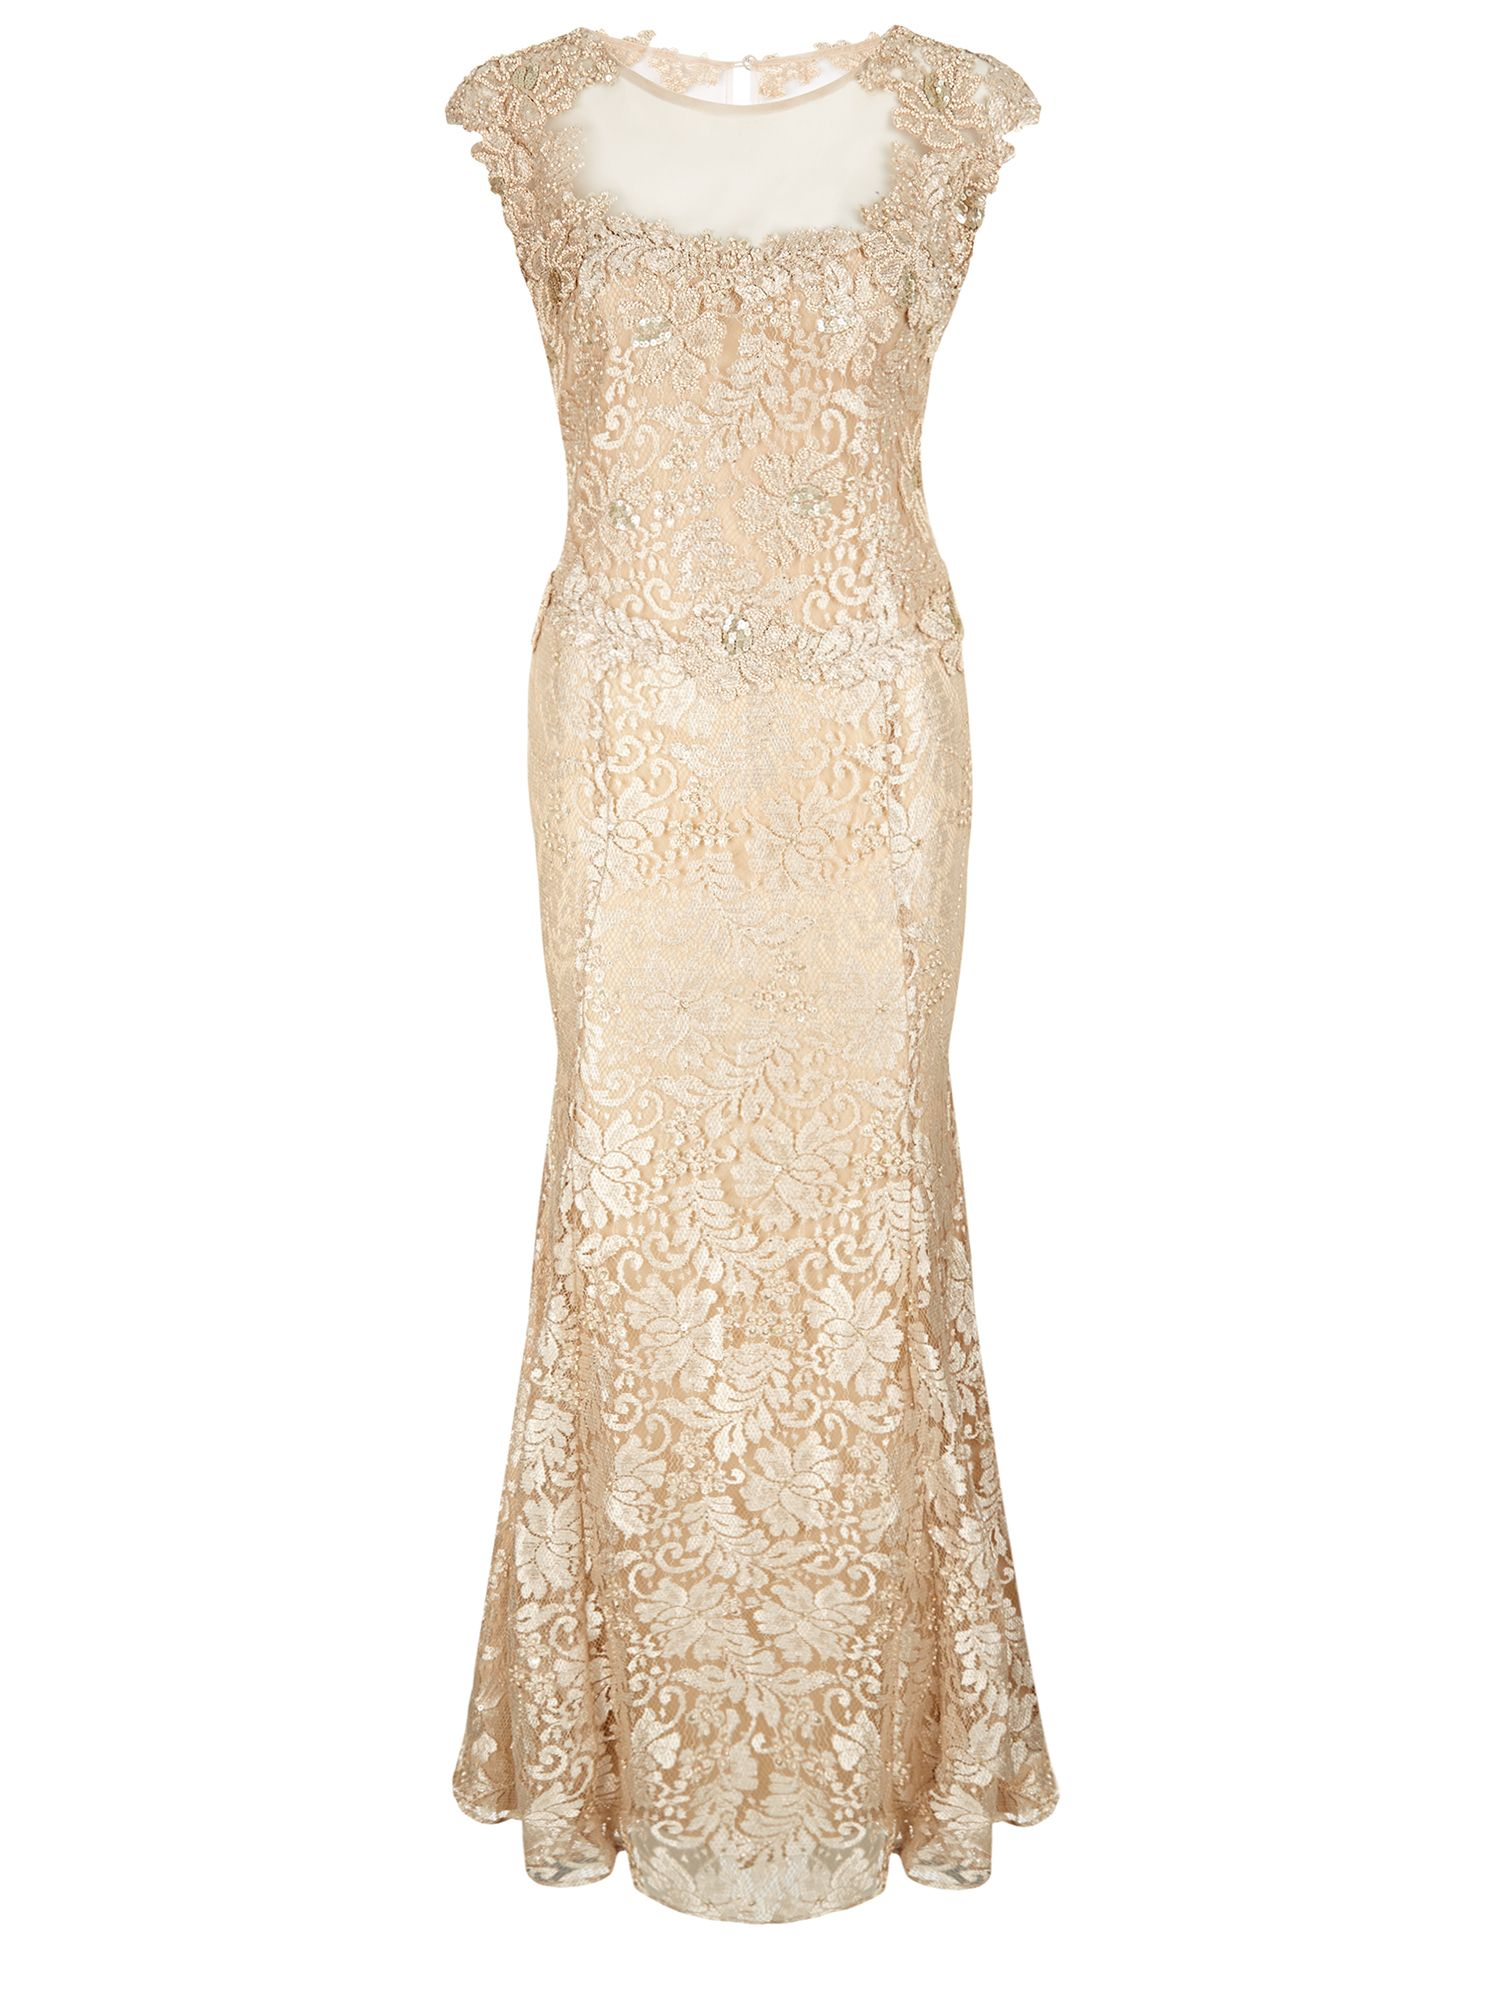 Jacques Vert Lace Beaded Evening Dress $199.00 AT vintagedancer.com